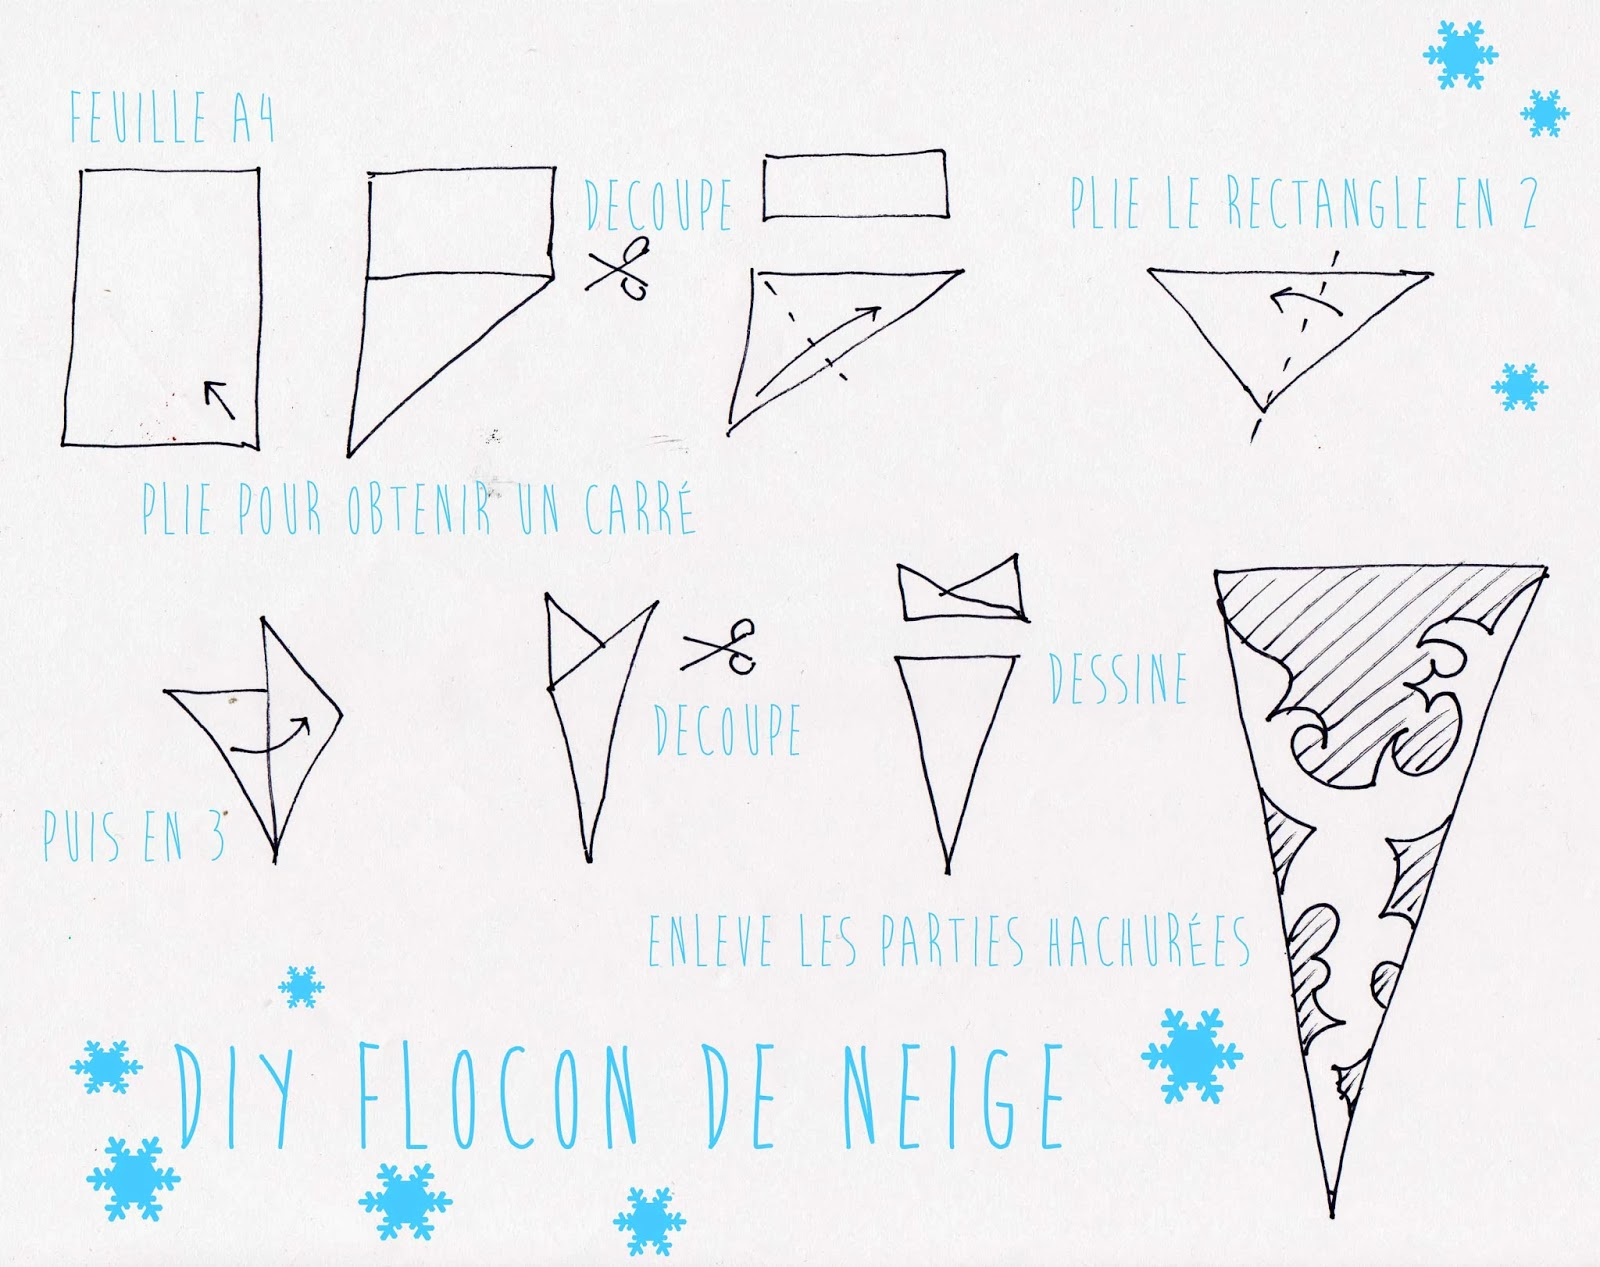 comment faire un flocon de neige en papier